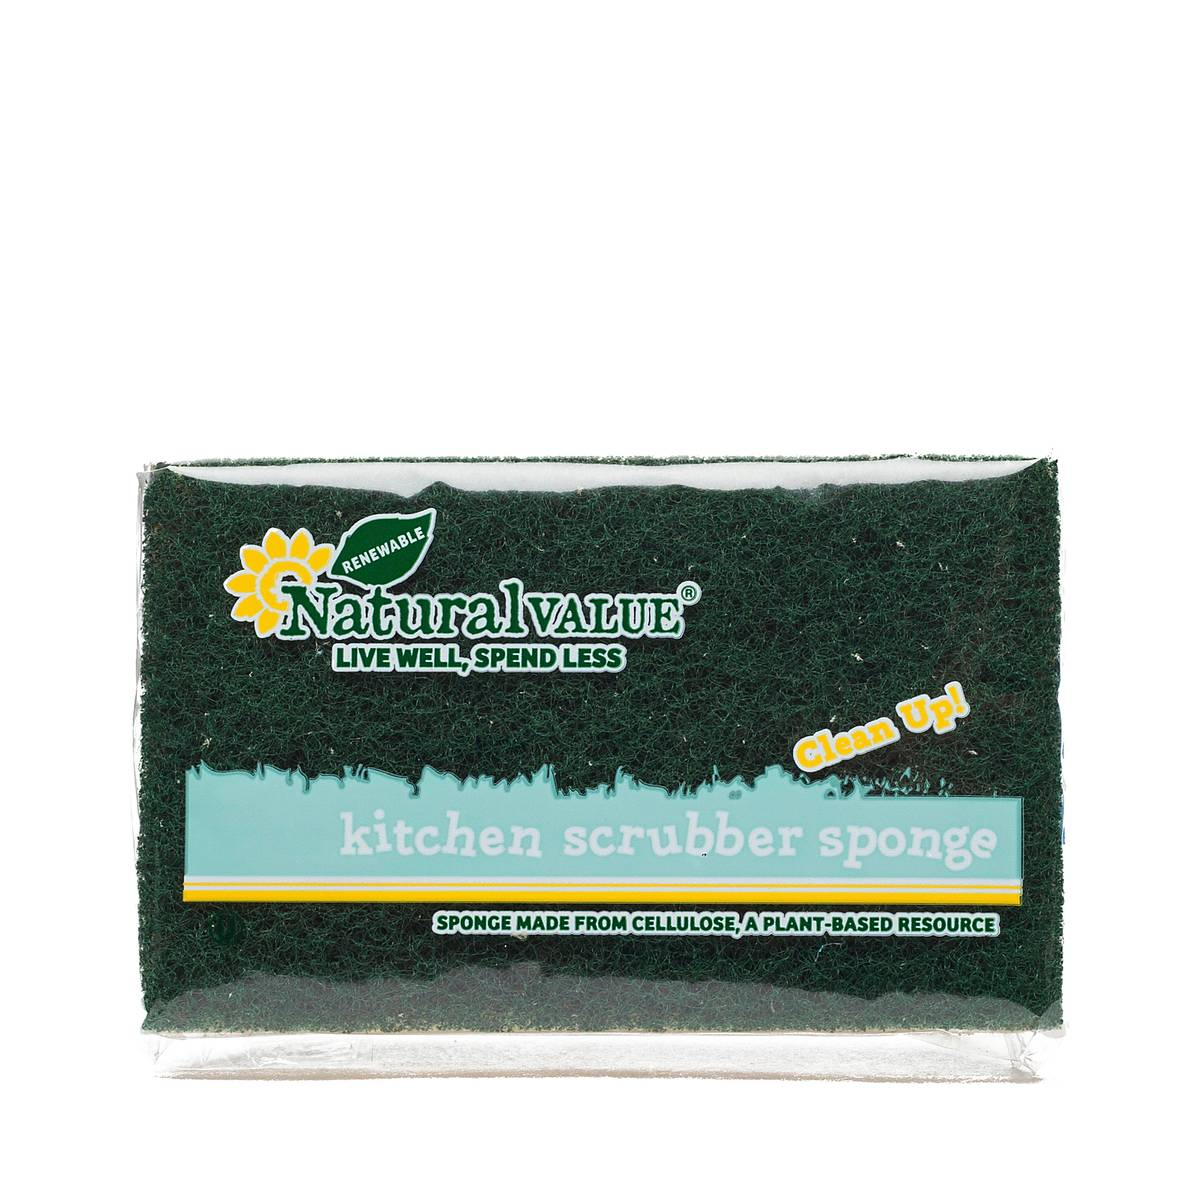 Kitchen Scrubber Sponge by Natural Value - Thrive Market